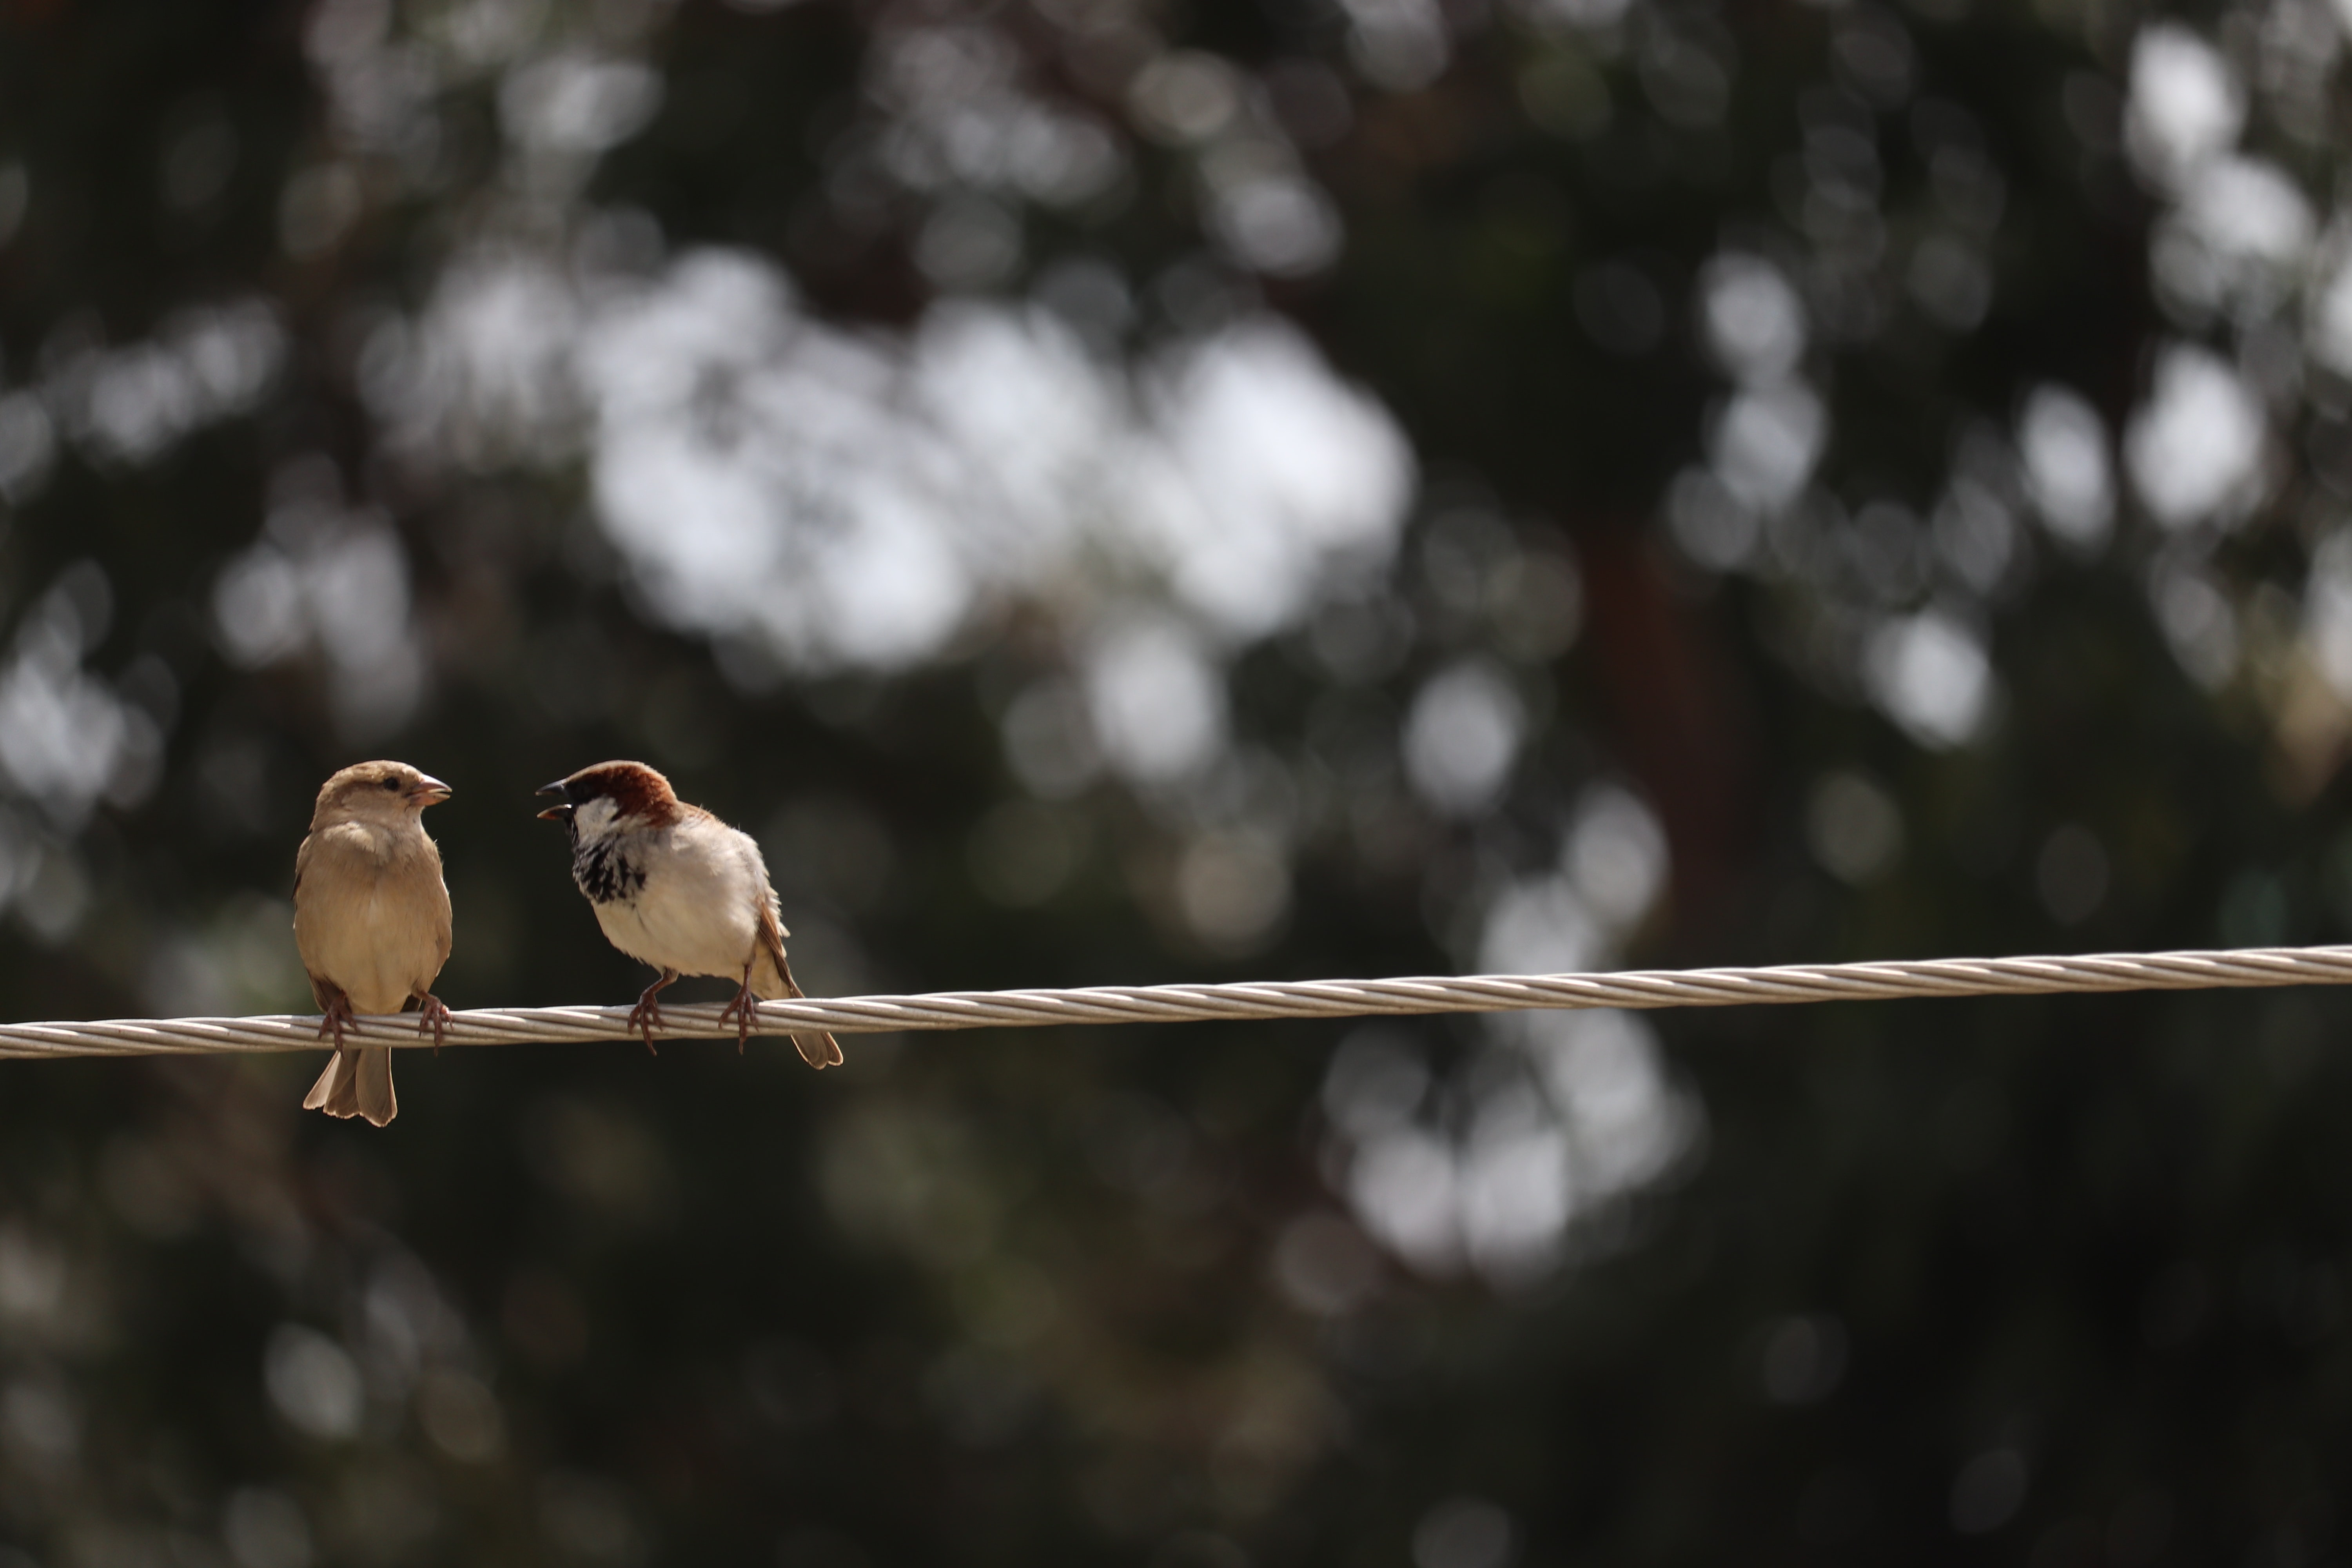 tilt shift focus photography of two brown birds perched on rope